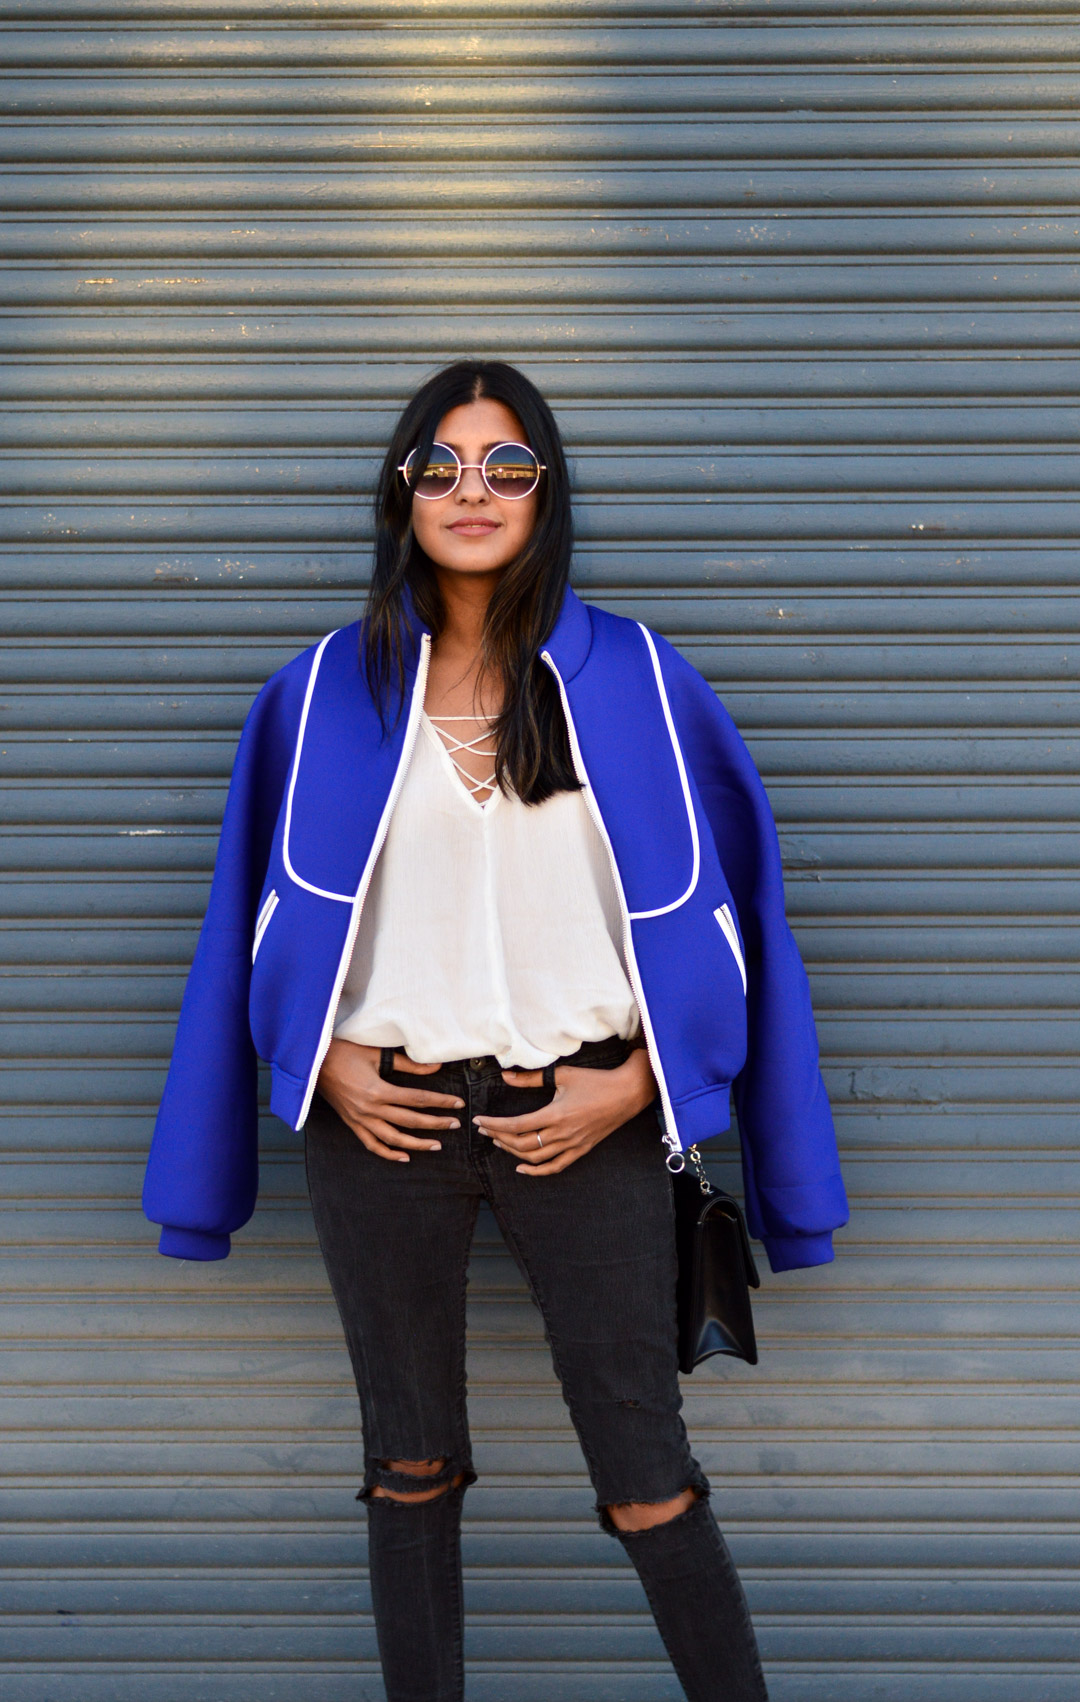 blue-bomber-jacket-winter-outfit-blogger-style 2